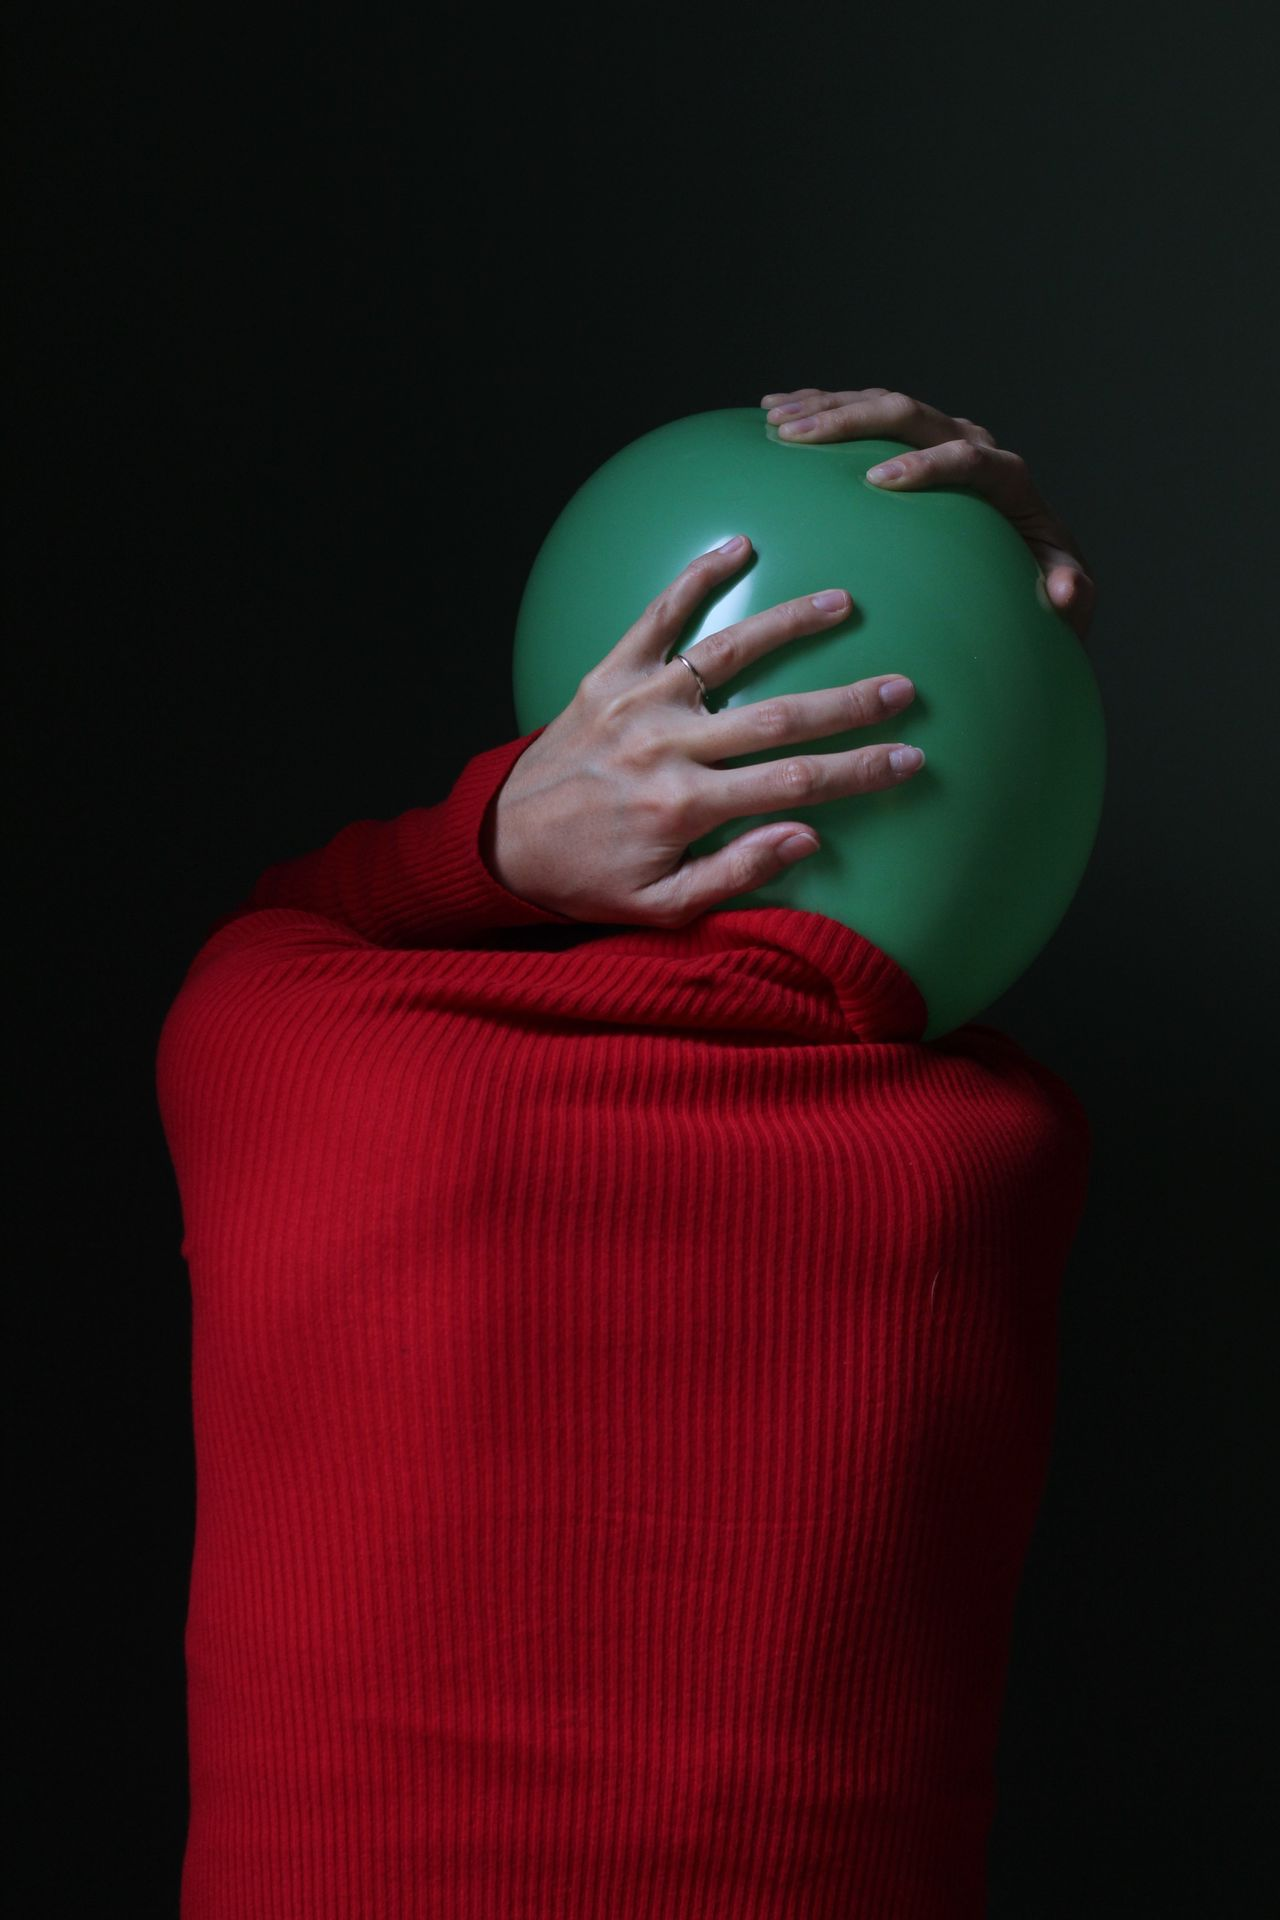 indoors, studio shot, red, one person, black background